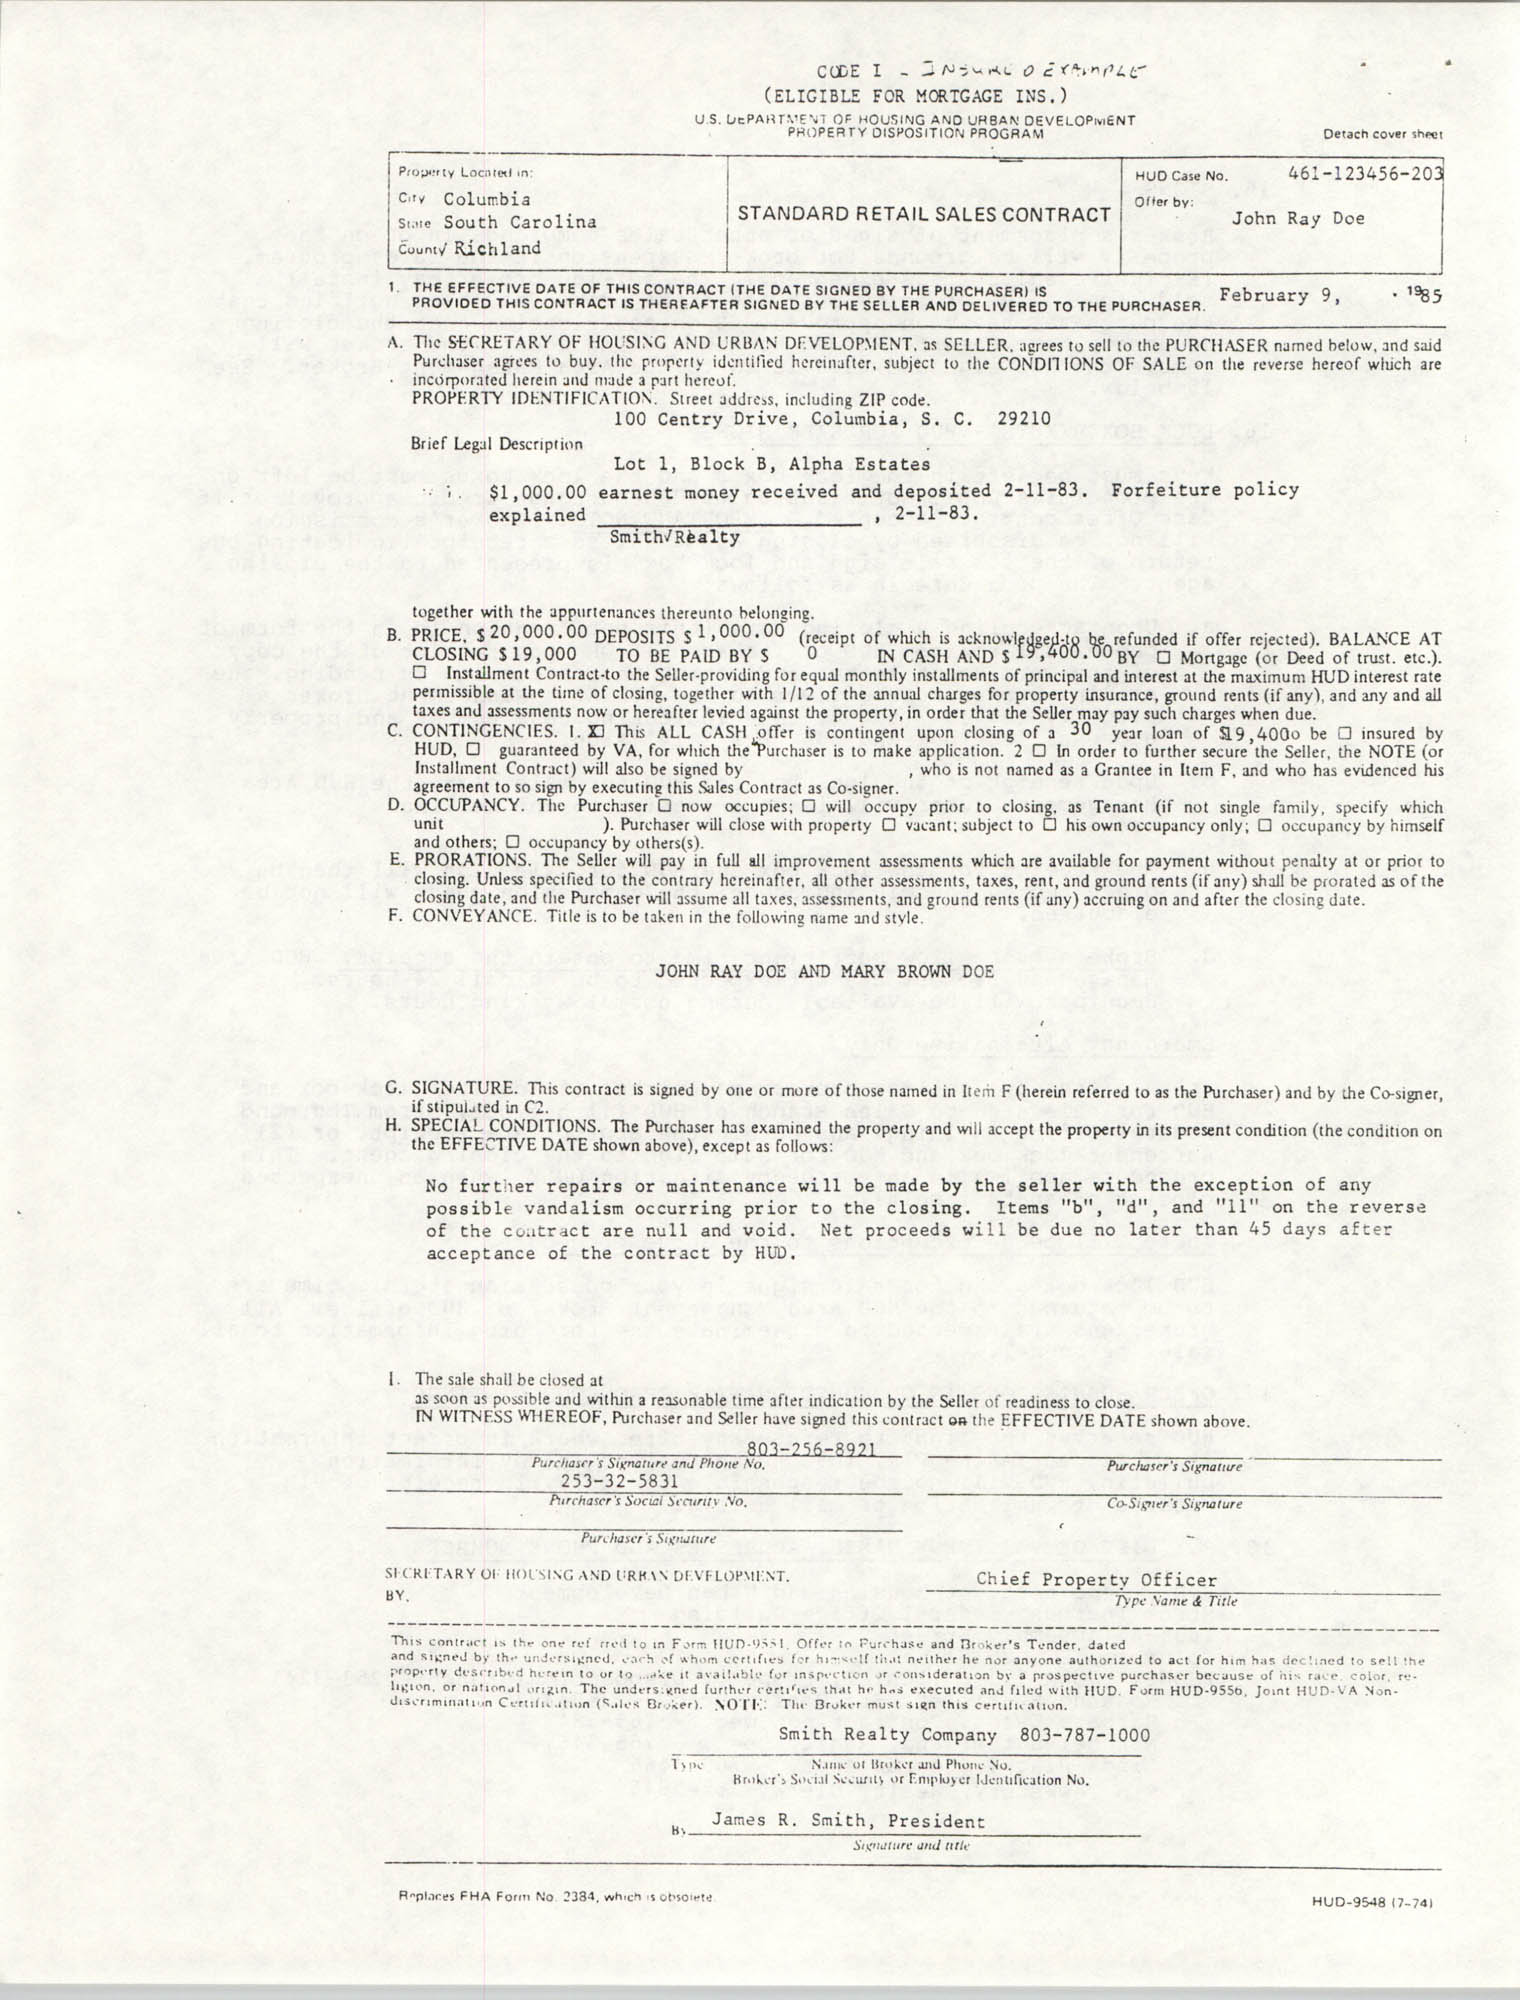 Standard Retail Sales Contract, Code I, Insured Example